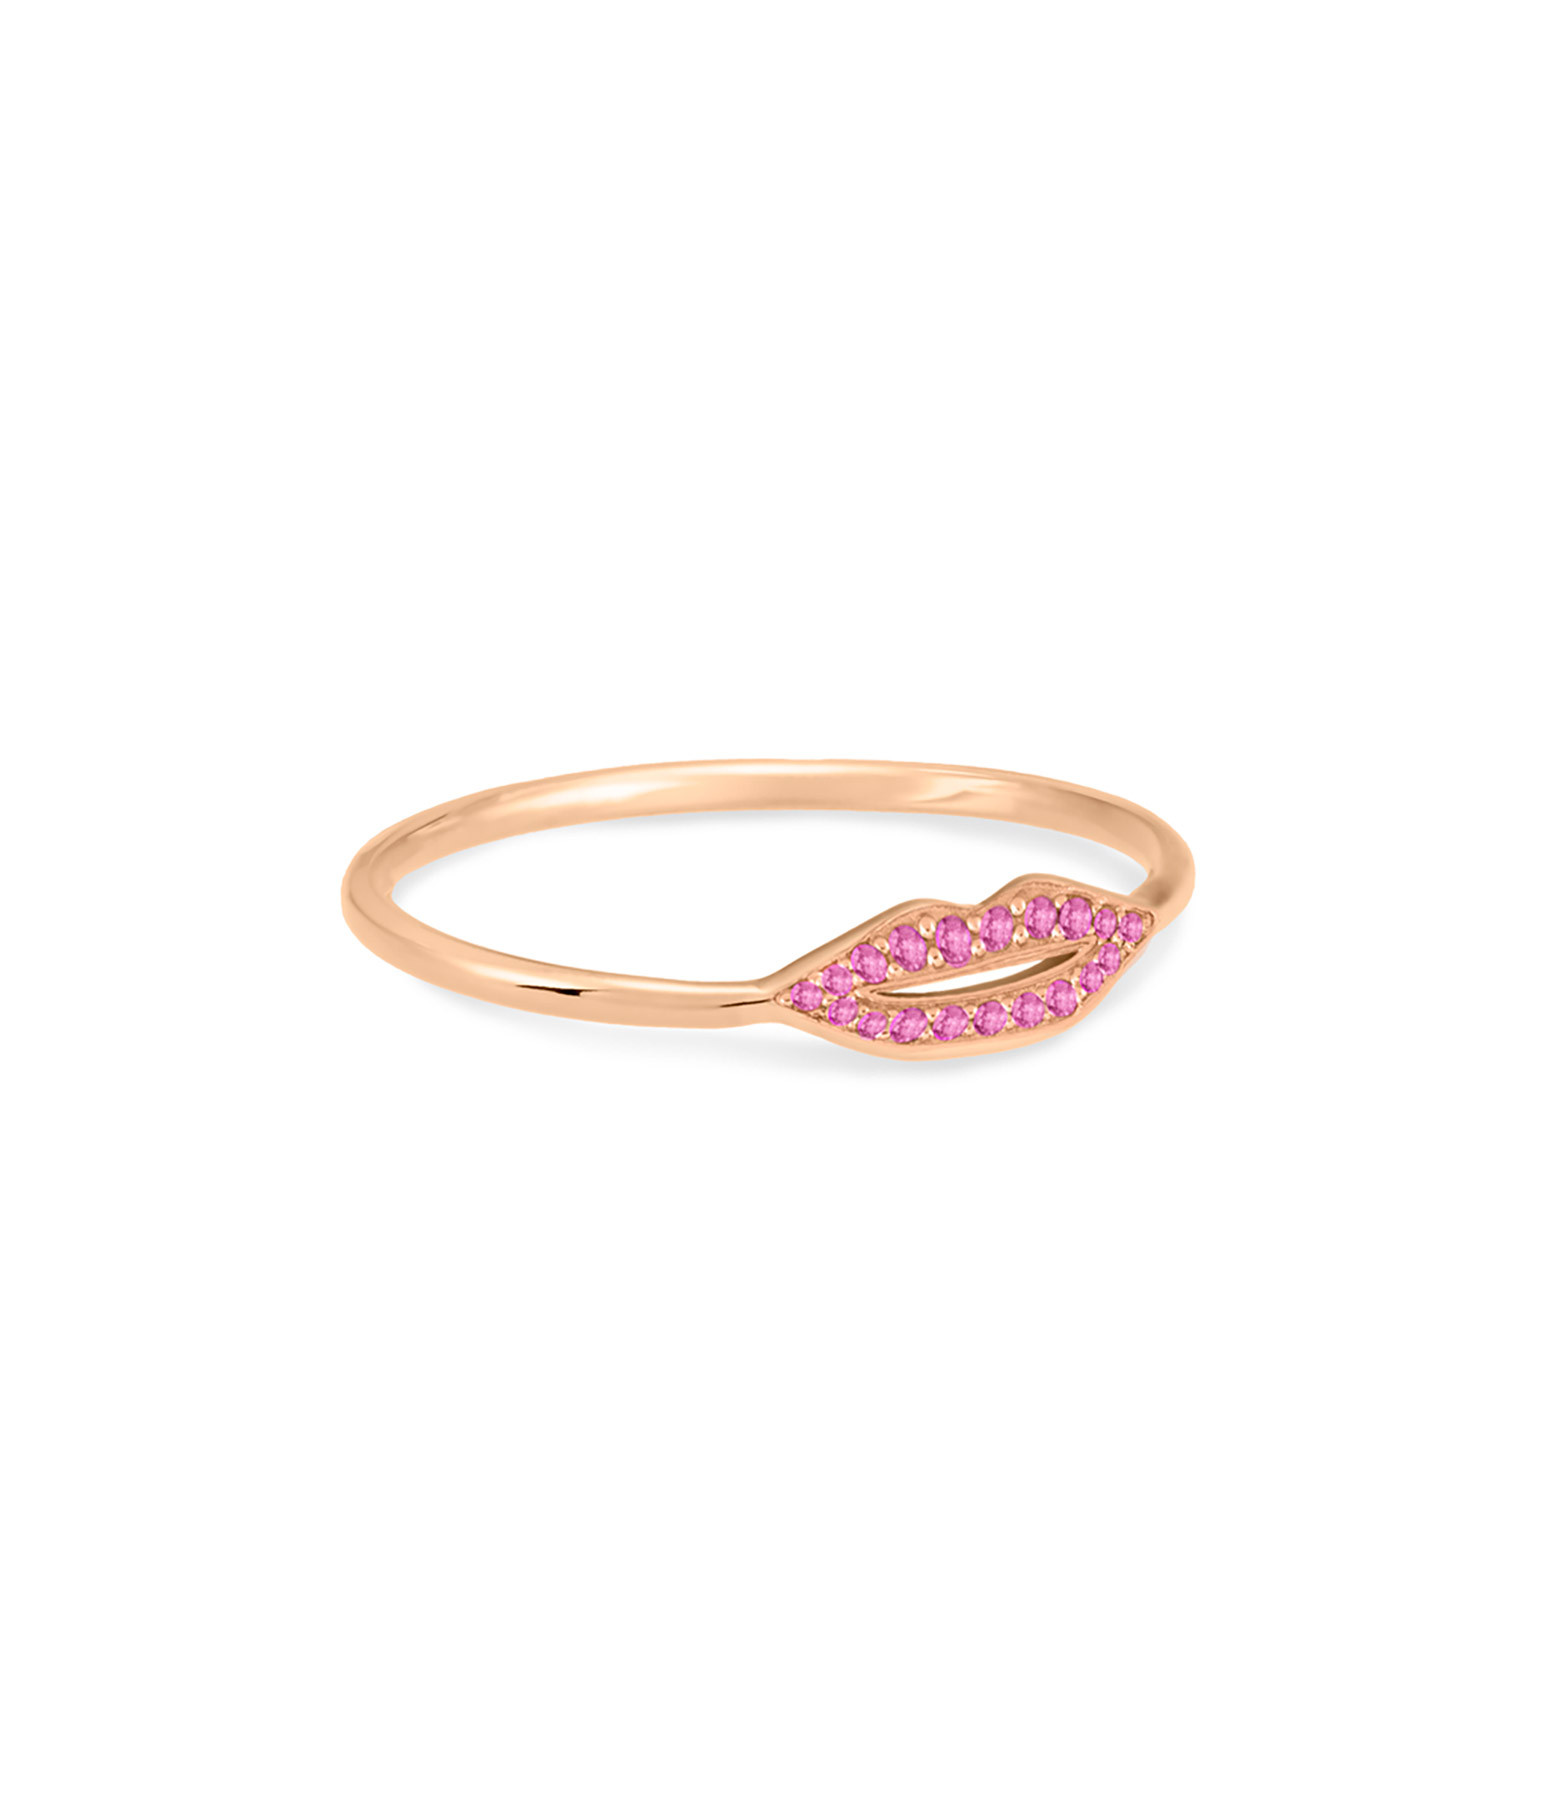 GINETTE NY - Bague French Kiss Saphirs Roses Or Rose